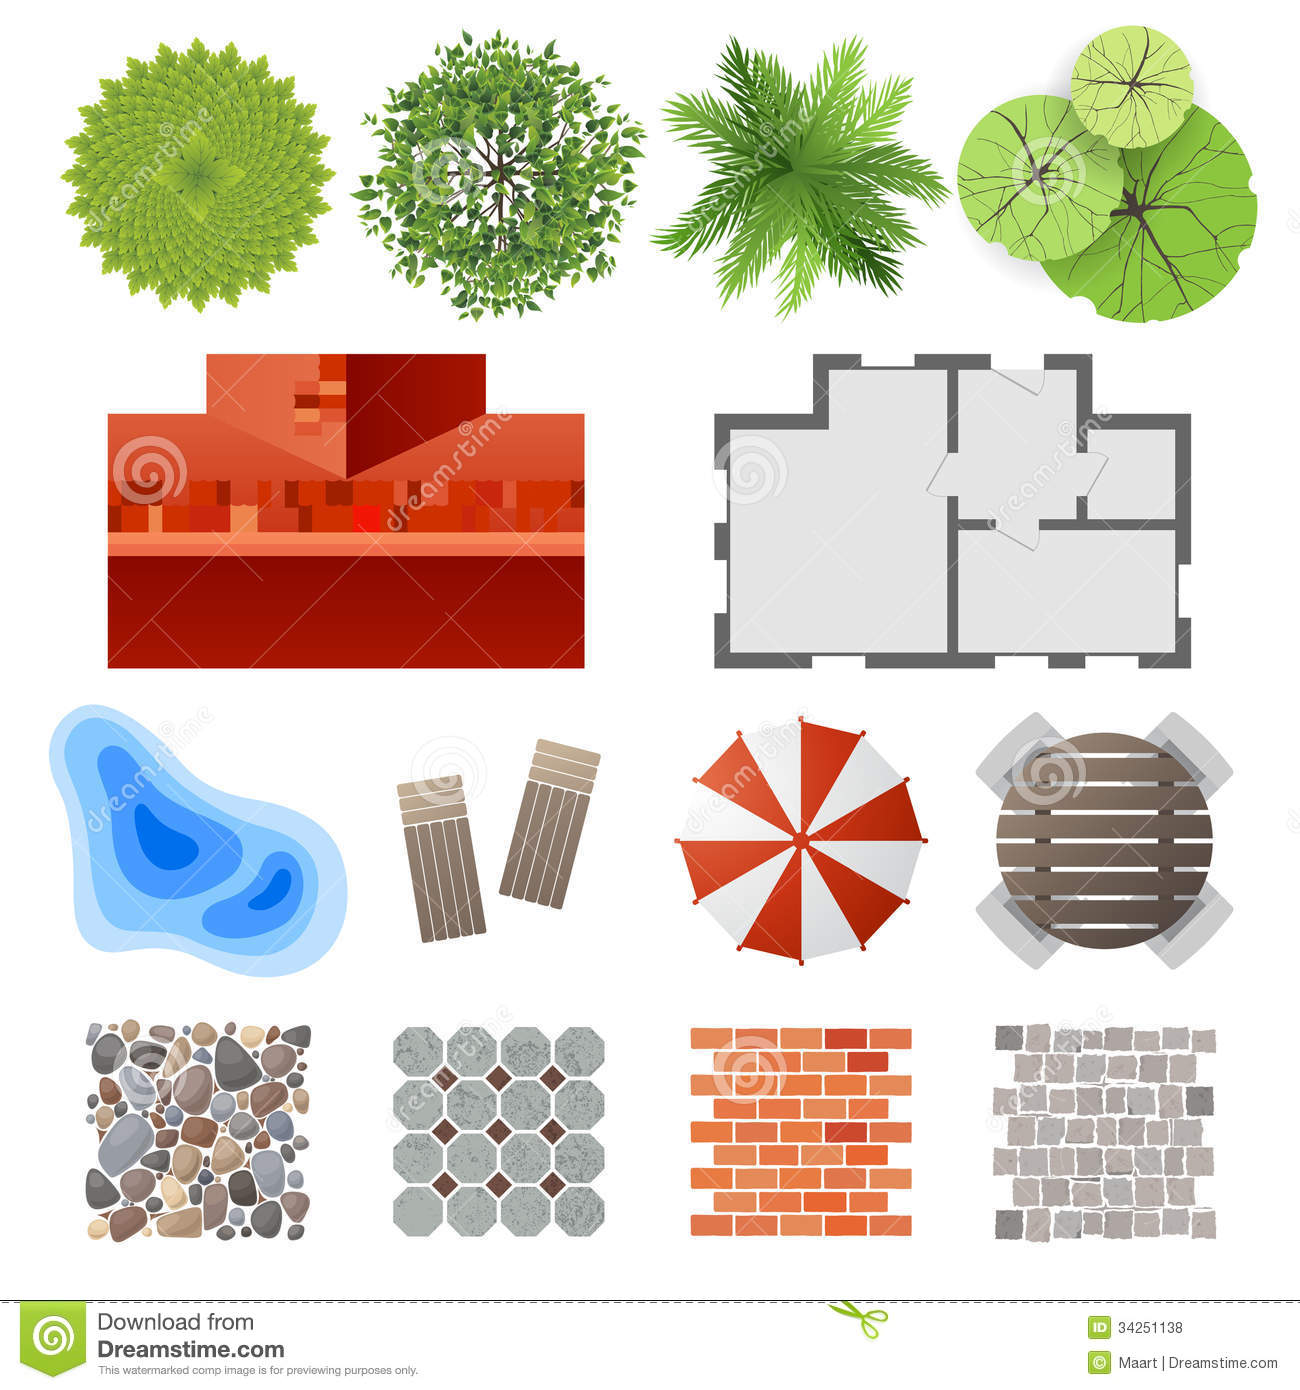 Elements for landscape design royalty free stock photos for Design your landscape